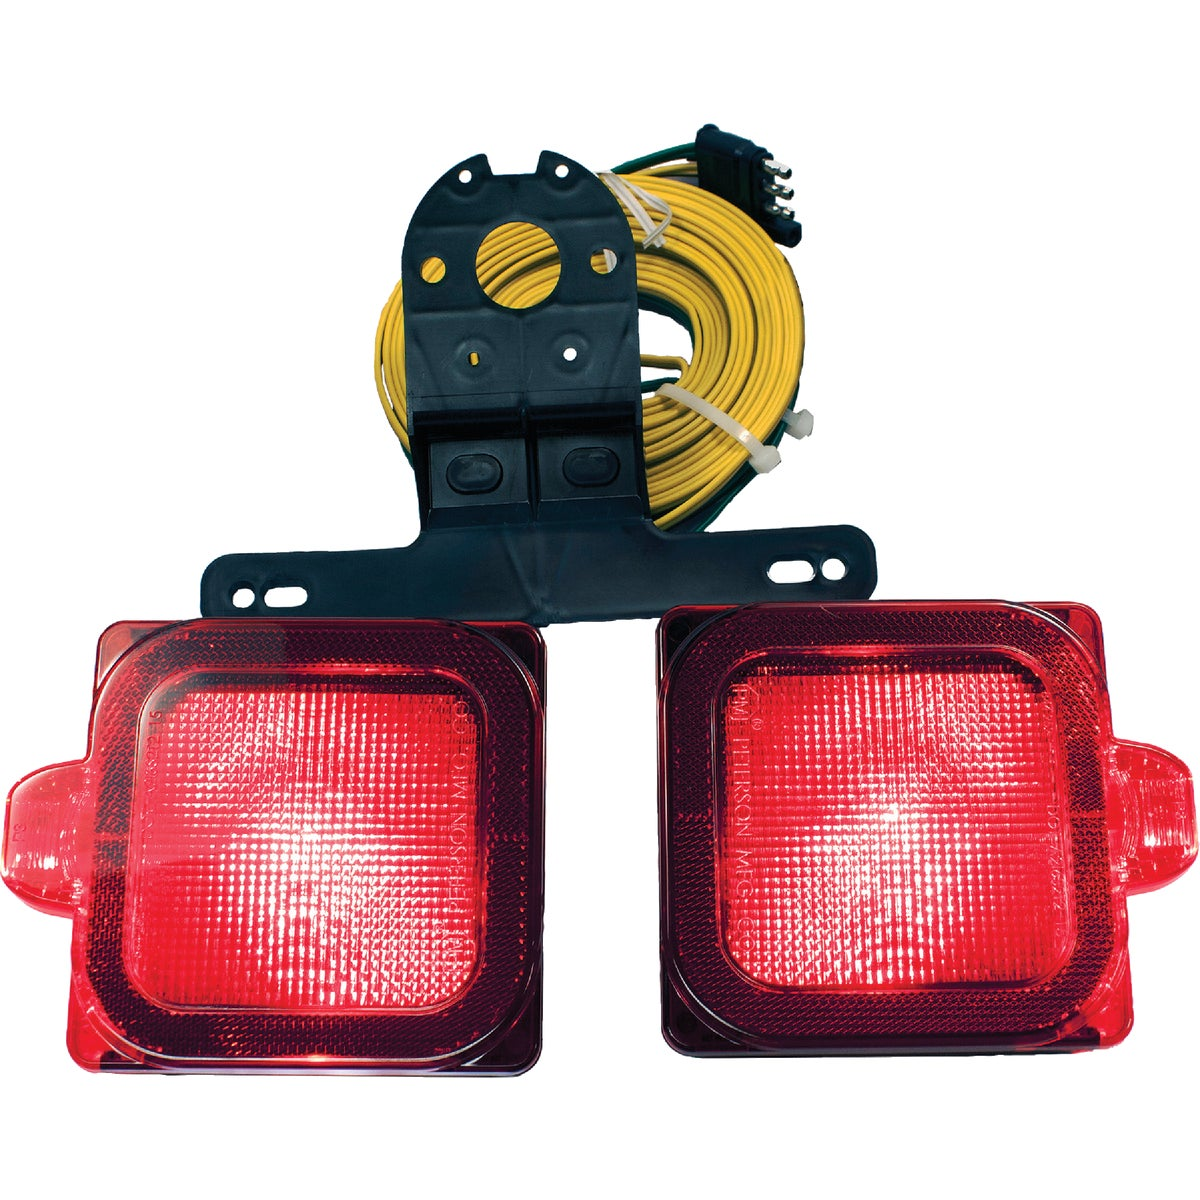 LED TRAIL REAR LIGHT KIT - V941 by Peterson Mfg Co